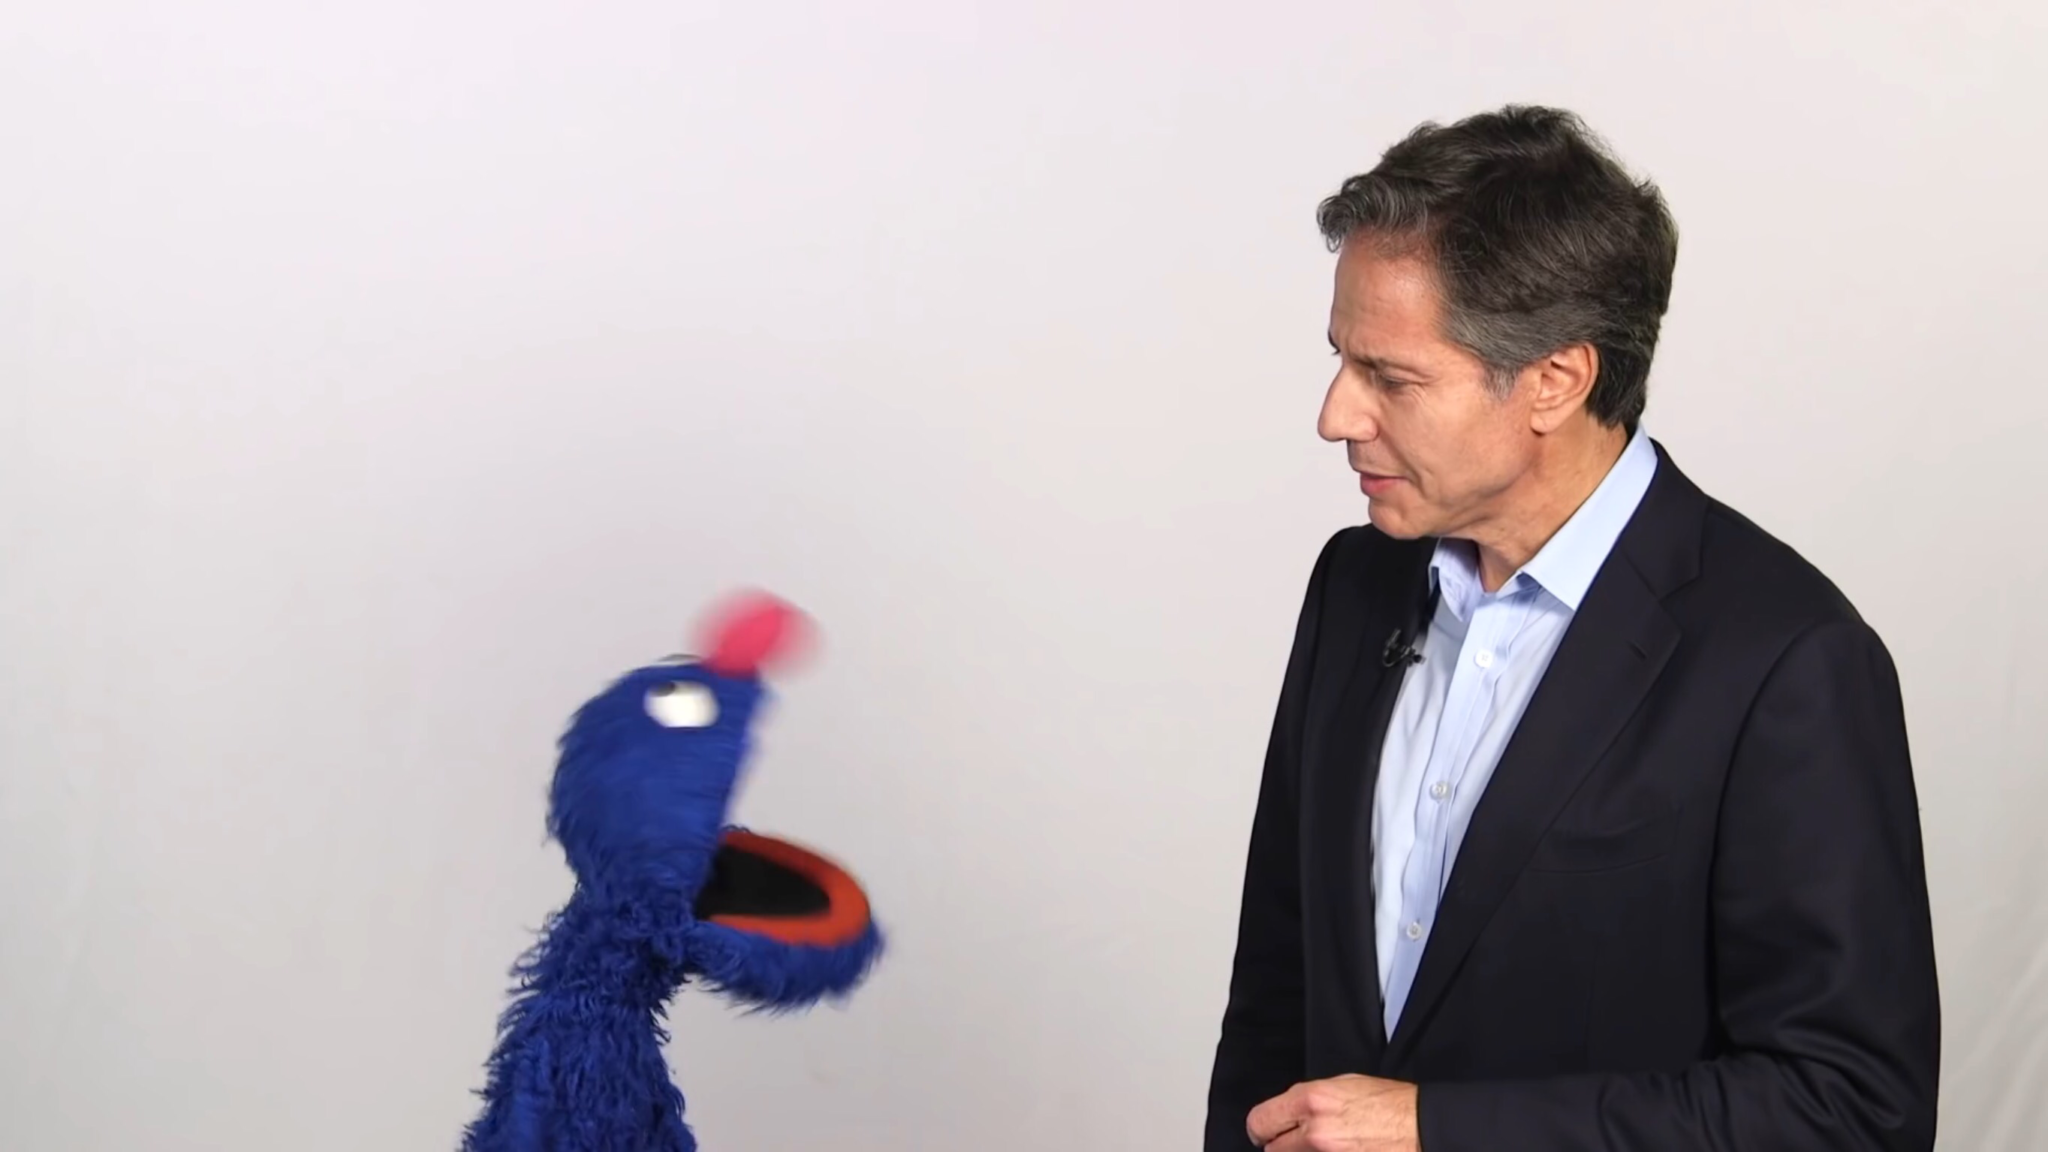 Sesame Street's Grover explains about refugees